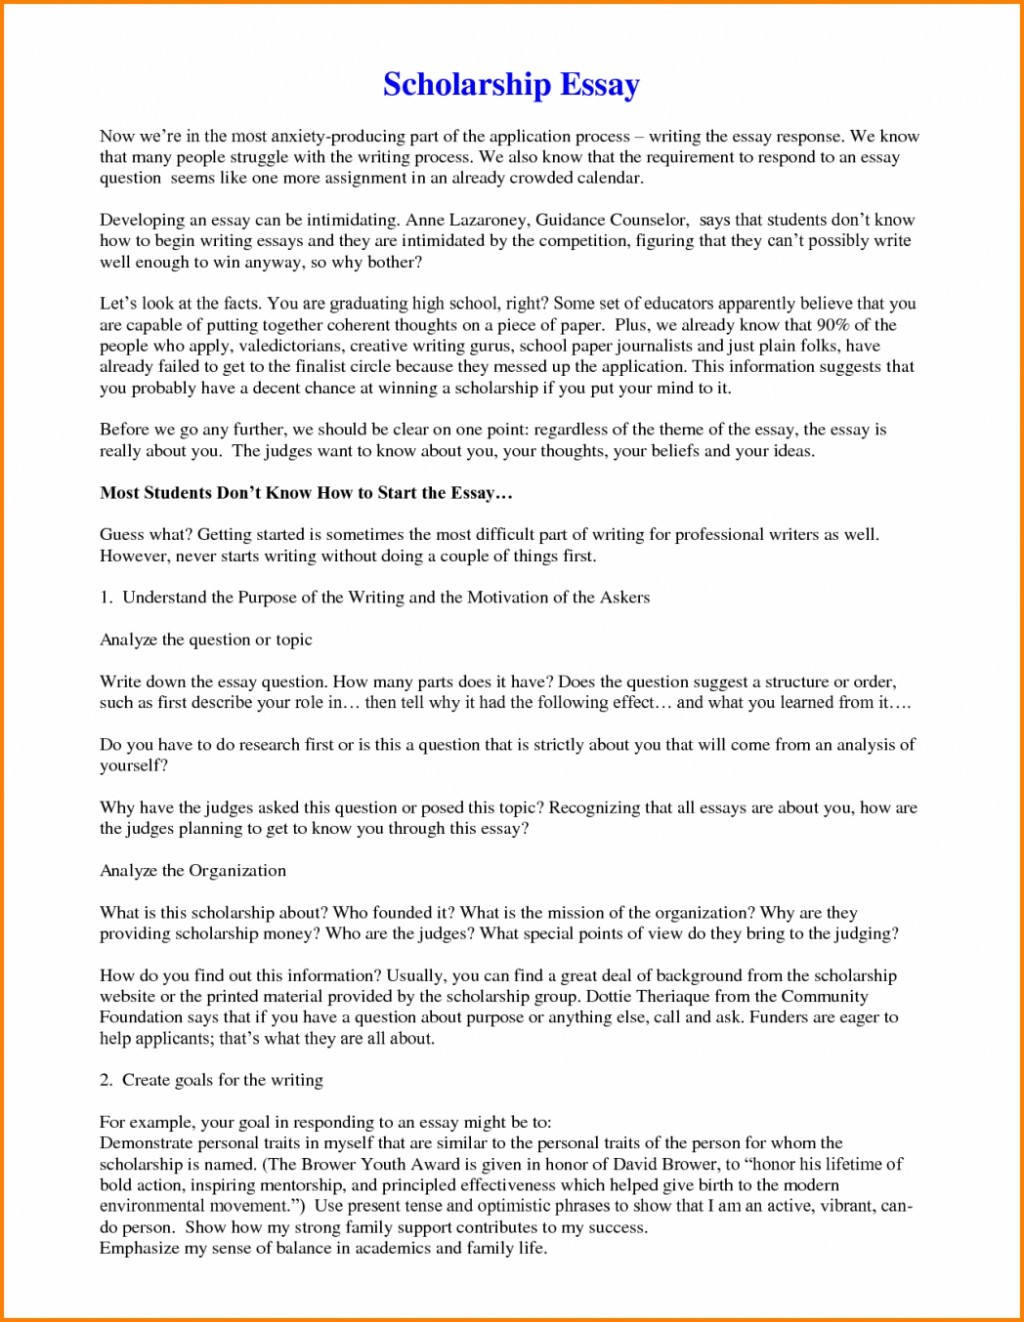 007 Sample Winning Scholarship Essays Colleges Best Personal Narrative Essay Motivation For In Microstructure 1048x1354 Sensational Large